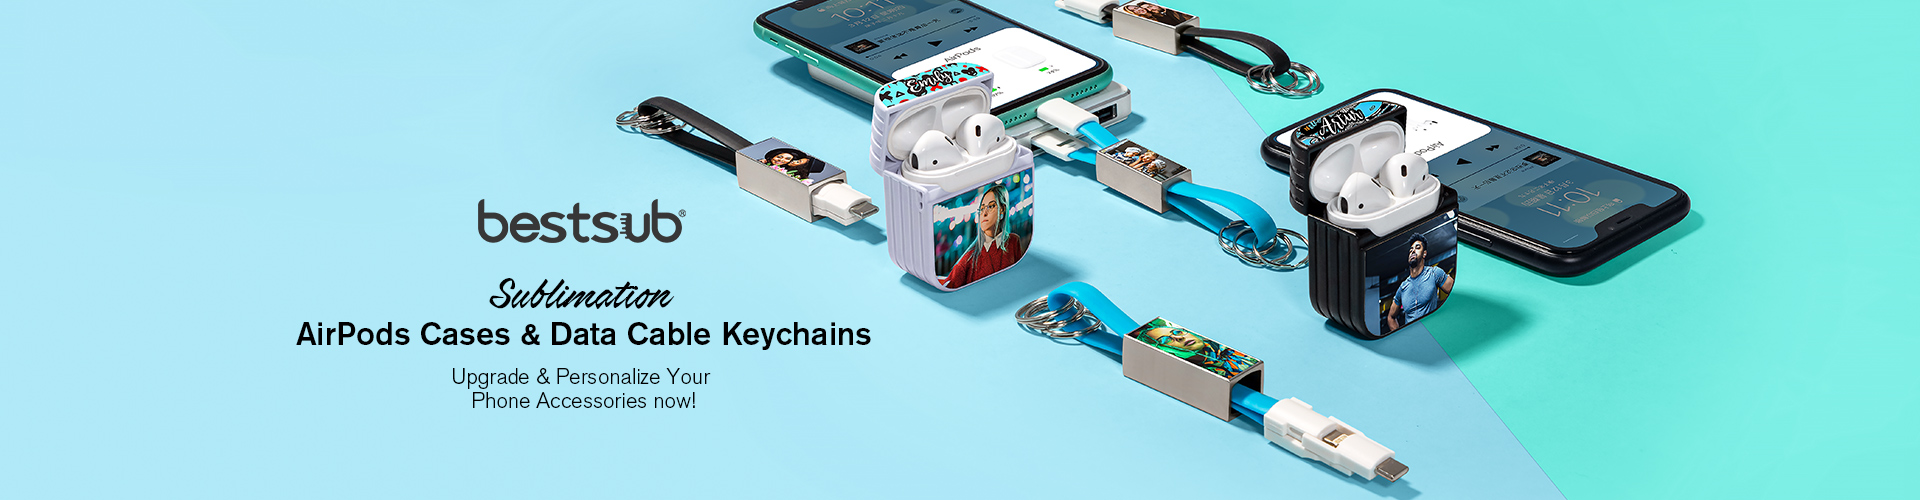 2020-03-13_Sublimation_AirPods_Cases_&_Data_Cables_new_web